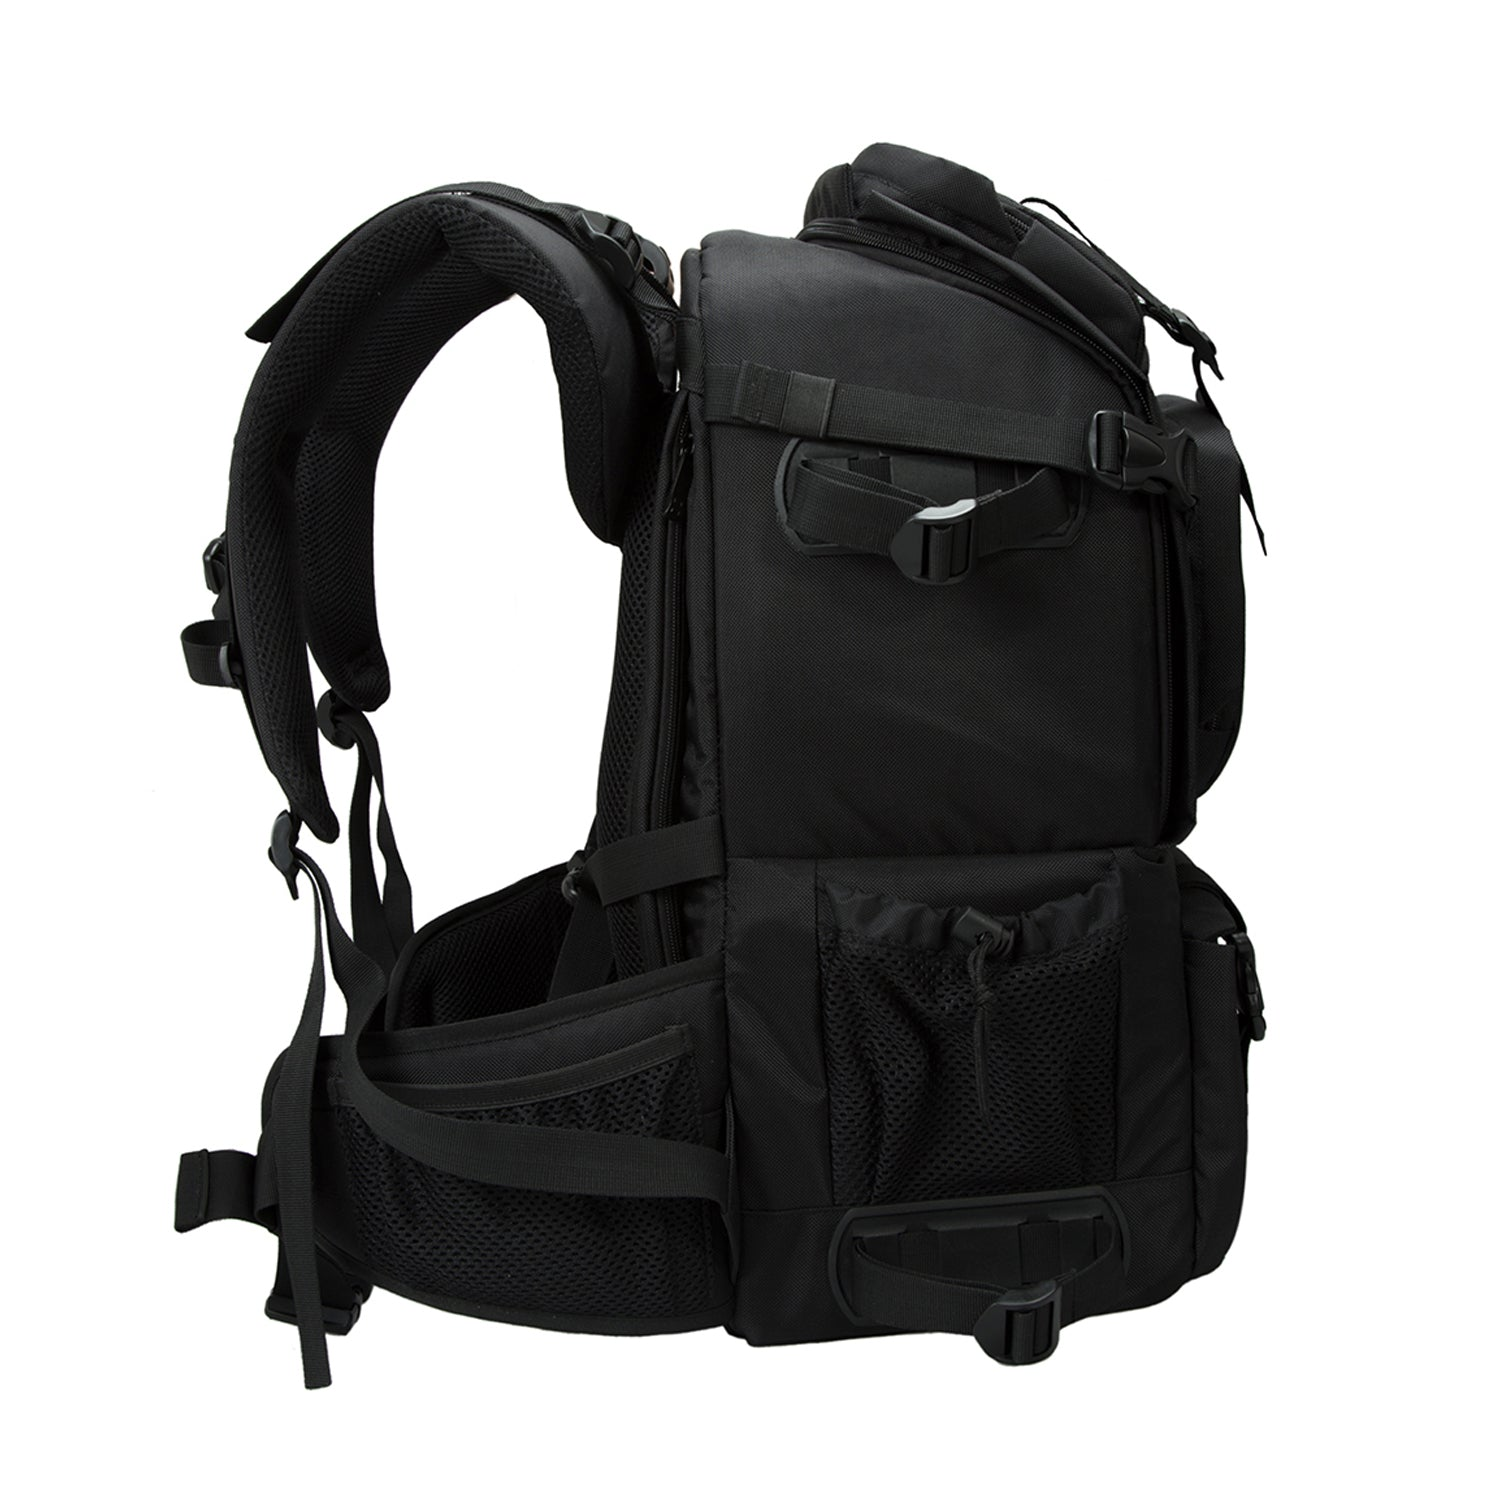 Anti Theft Professional Gear Backpack For SLR DSLR Cameras 15 Macbook Pro